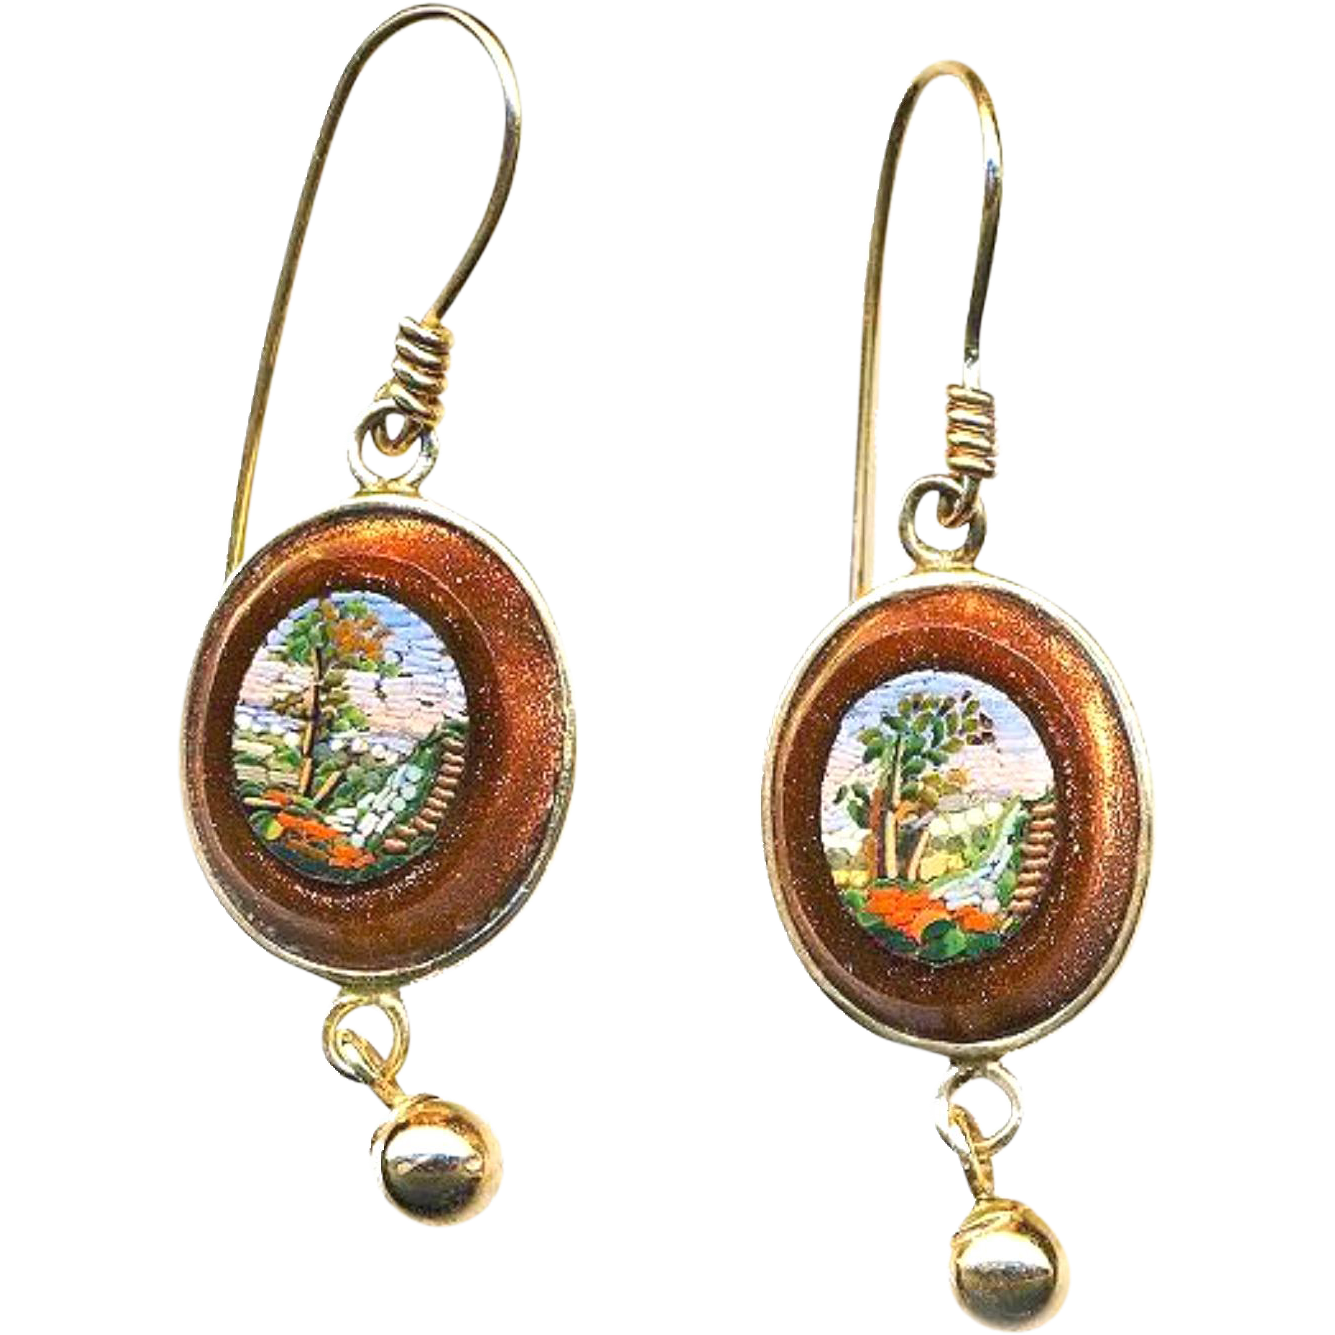 Earrings--Very Fine Mid-19th C. Micromosaic Water Garden Scenes in Aventurine Glass and 14 Karat Gold